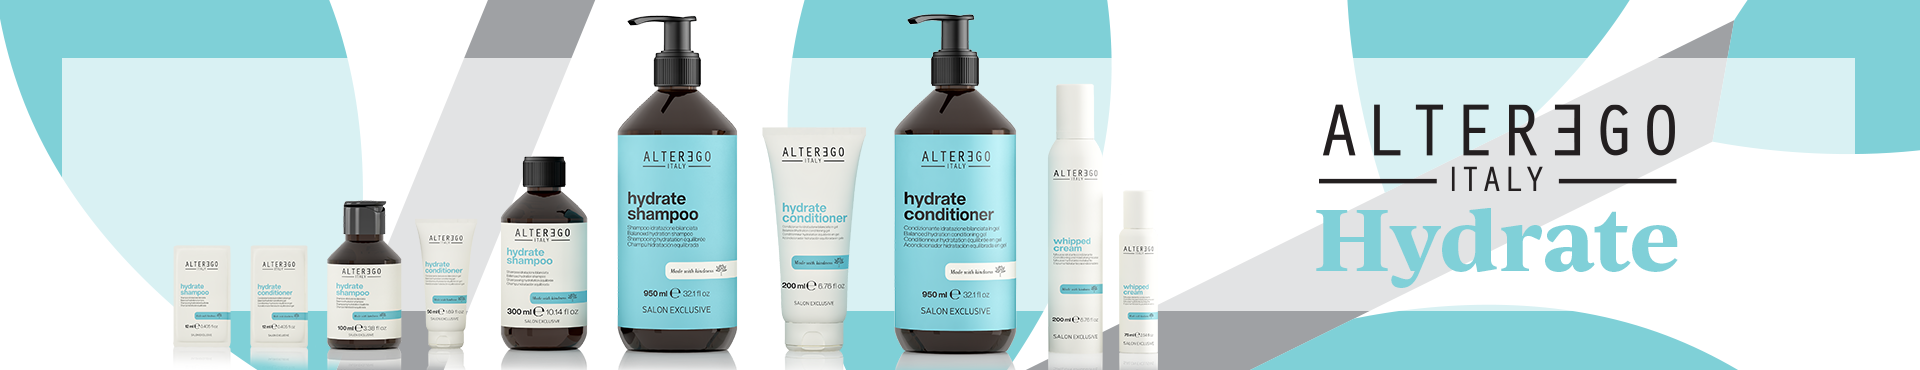 ALTEREGO HYDRATE